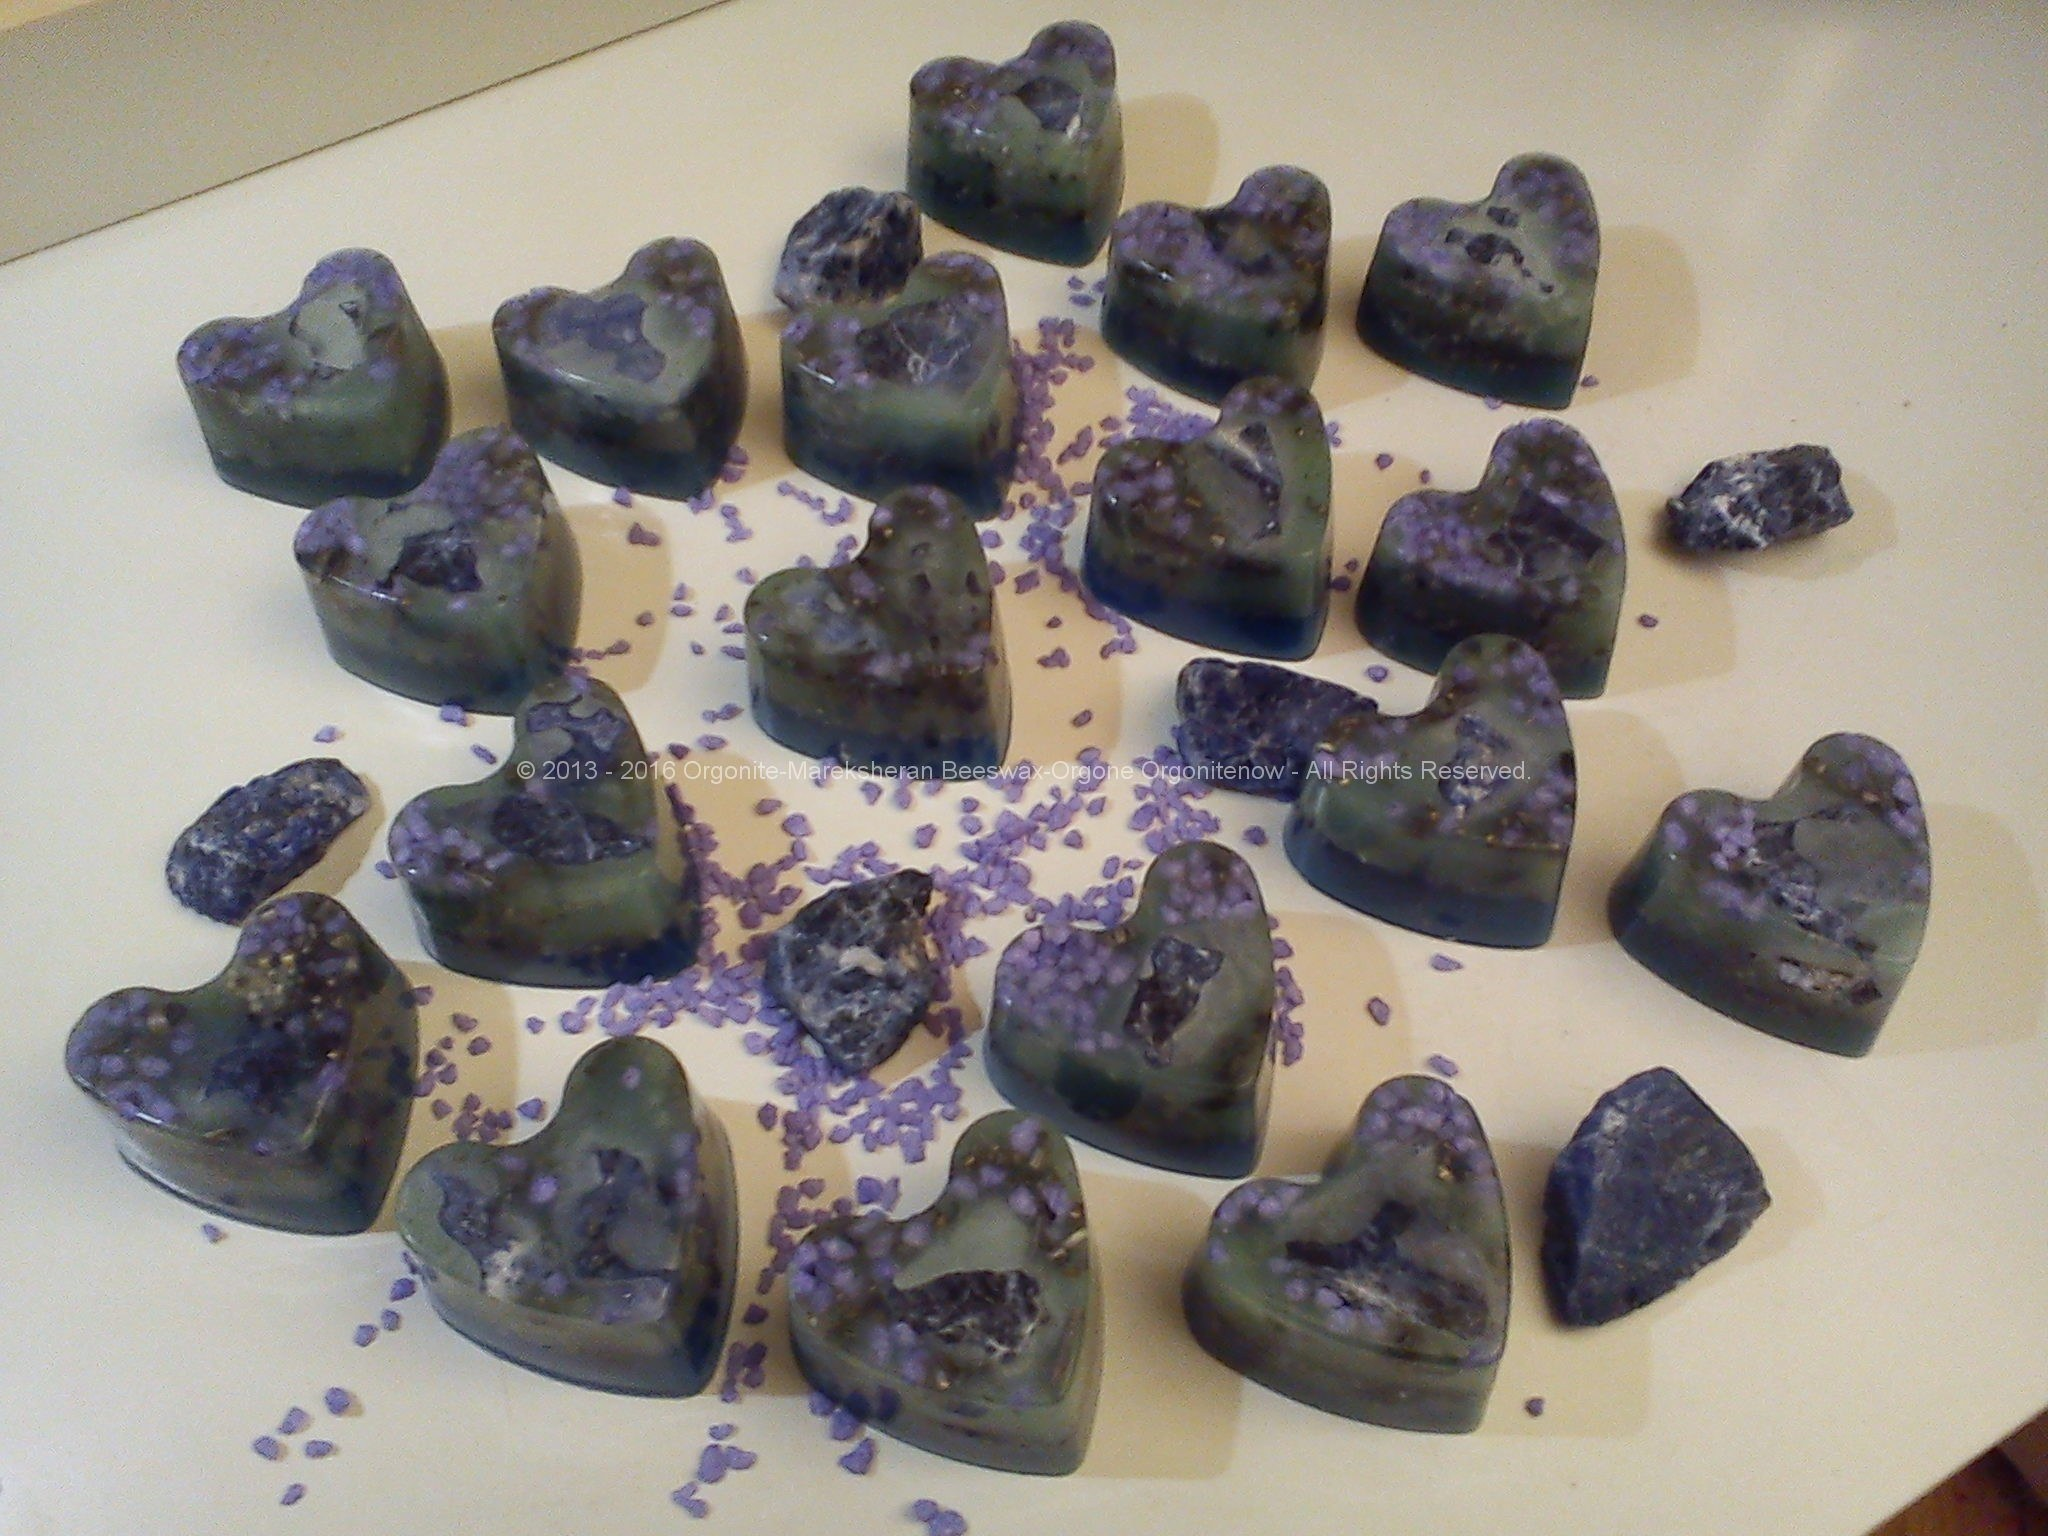 Orgonite beeswax hearts, art energy by Marco Matteucci aka Marek Sheran